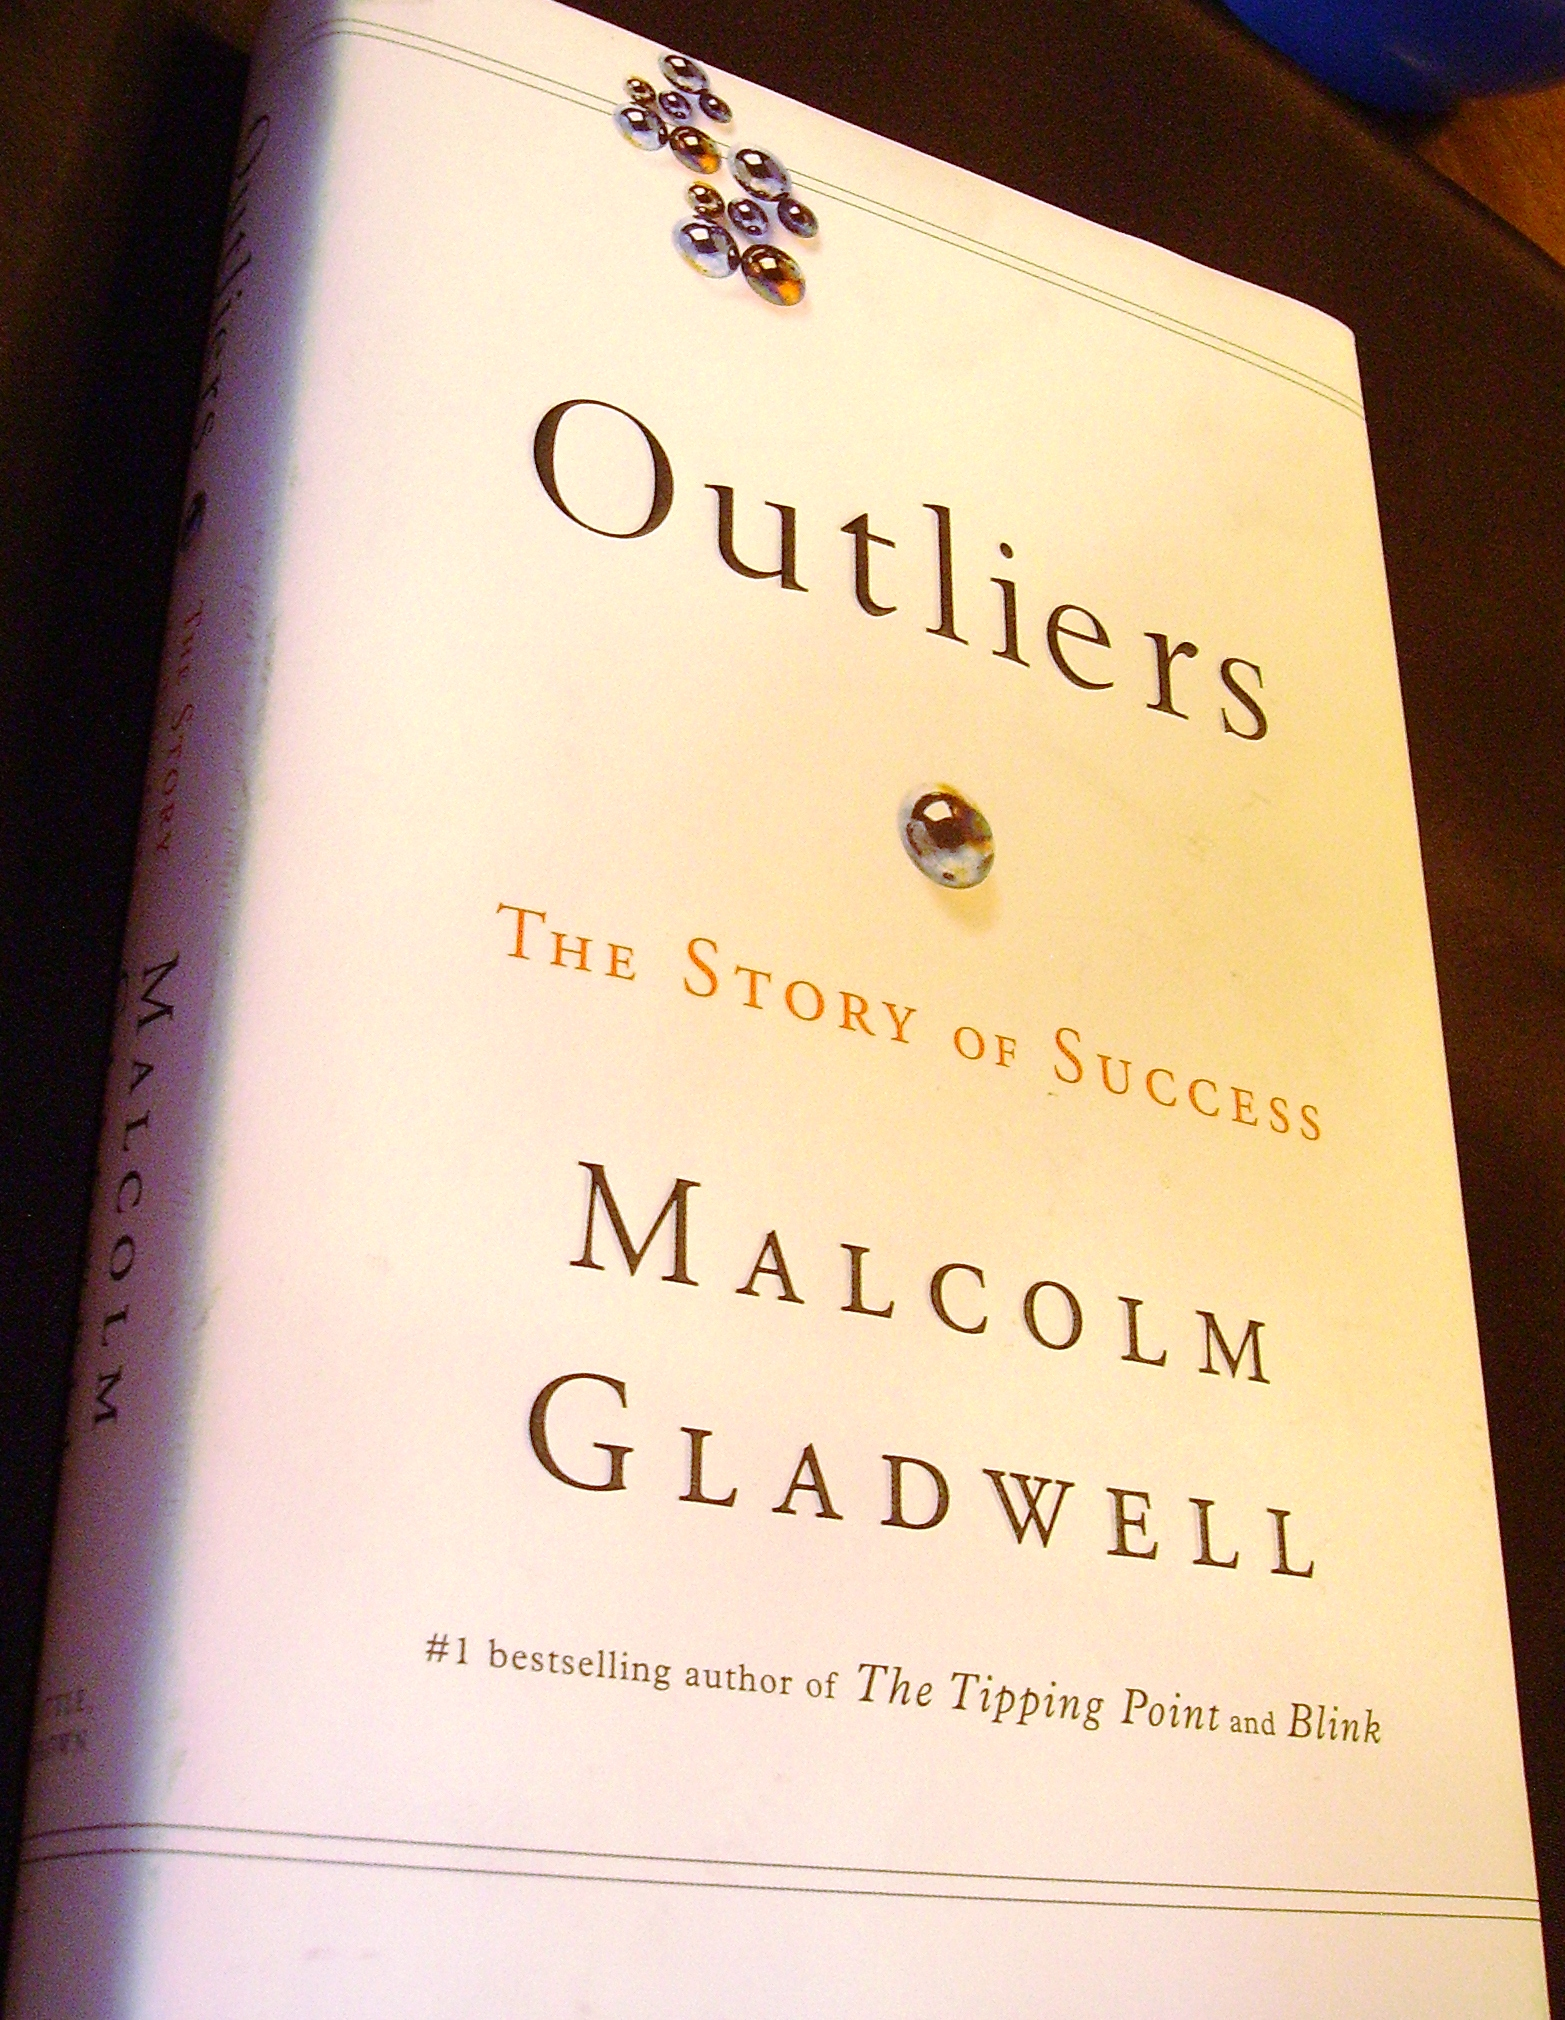 essays on the tipping point by malcolm gladwell Malcolm gladwell's suggestion that a person's character is reflected in a given context is correct shown through his or her the tipping point essay.